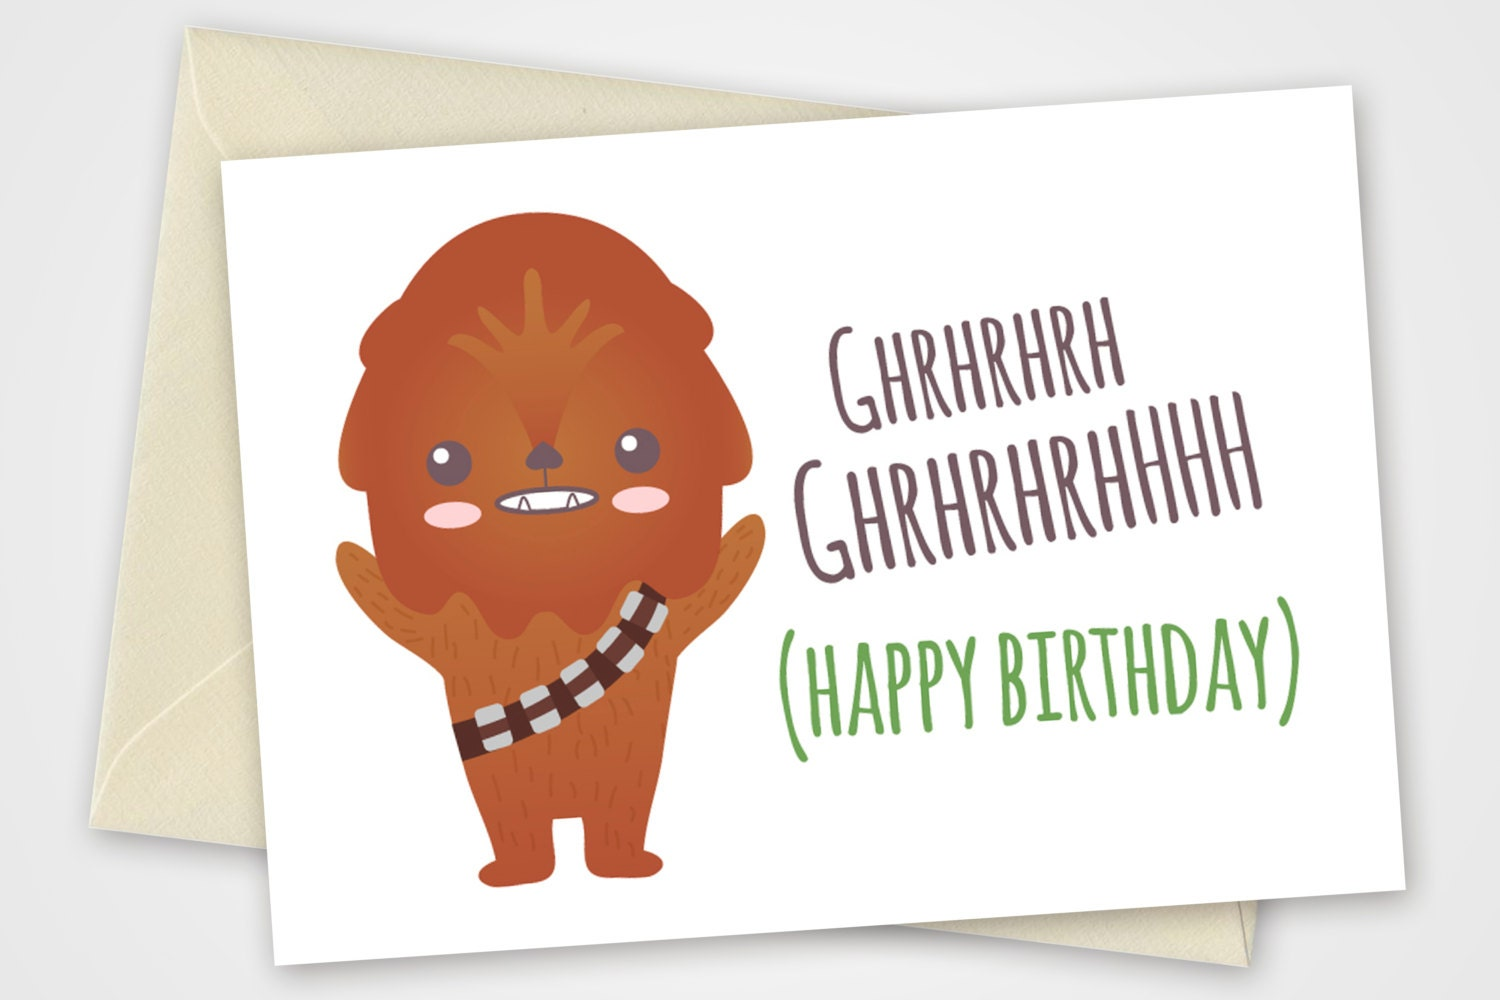 Star wars birthday card – Star Wars Birthday Card